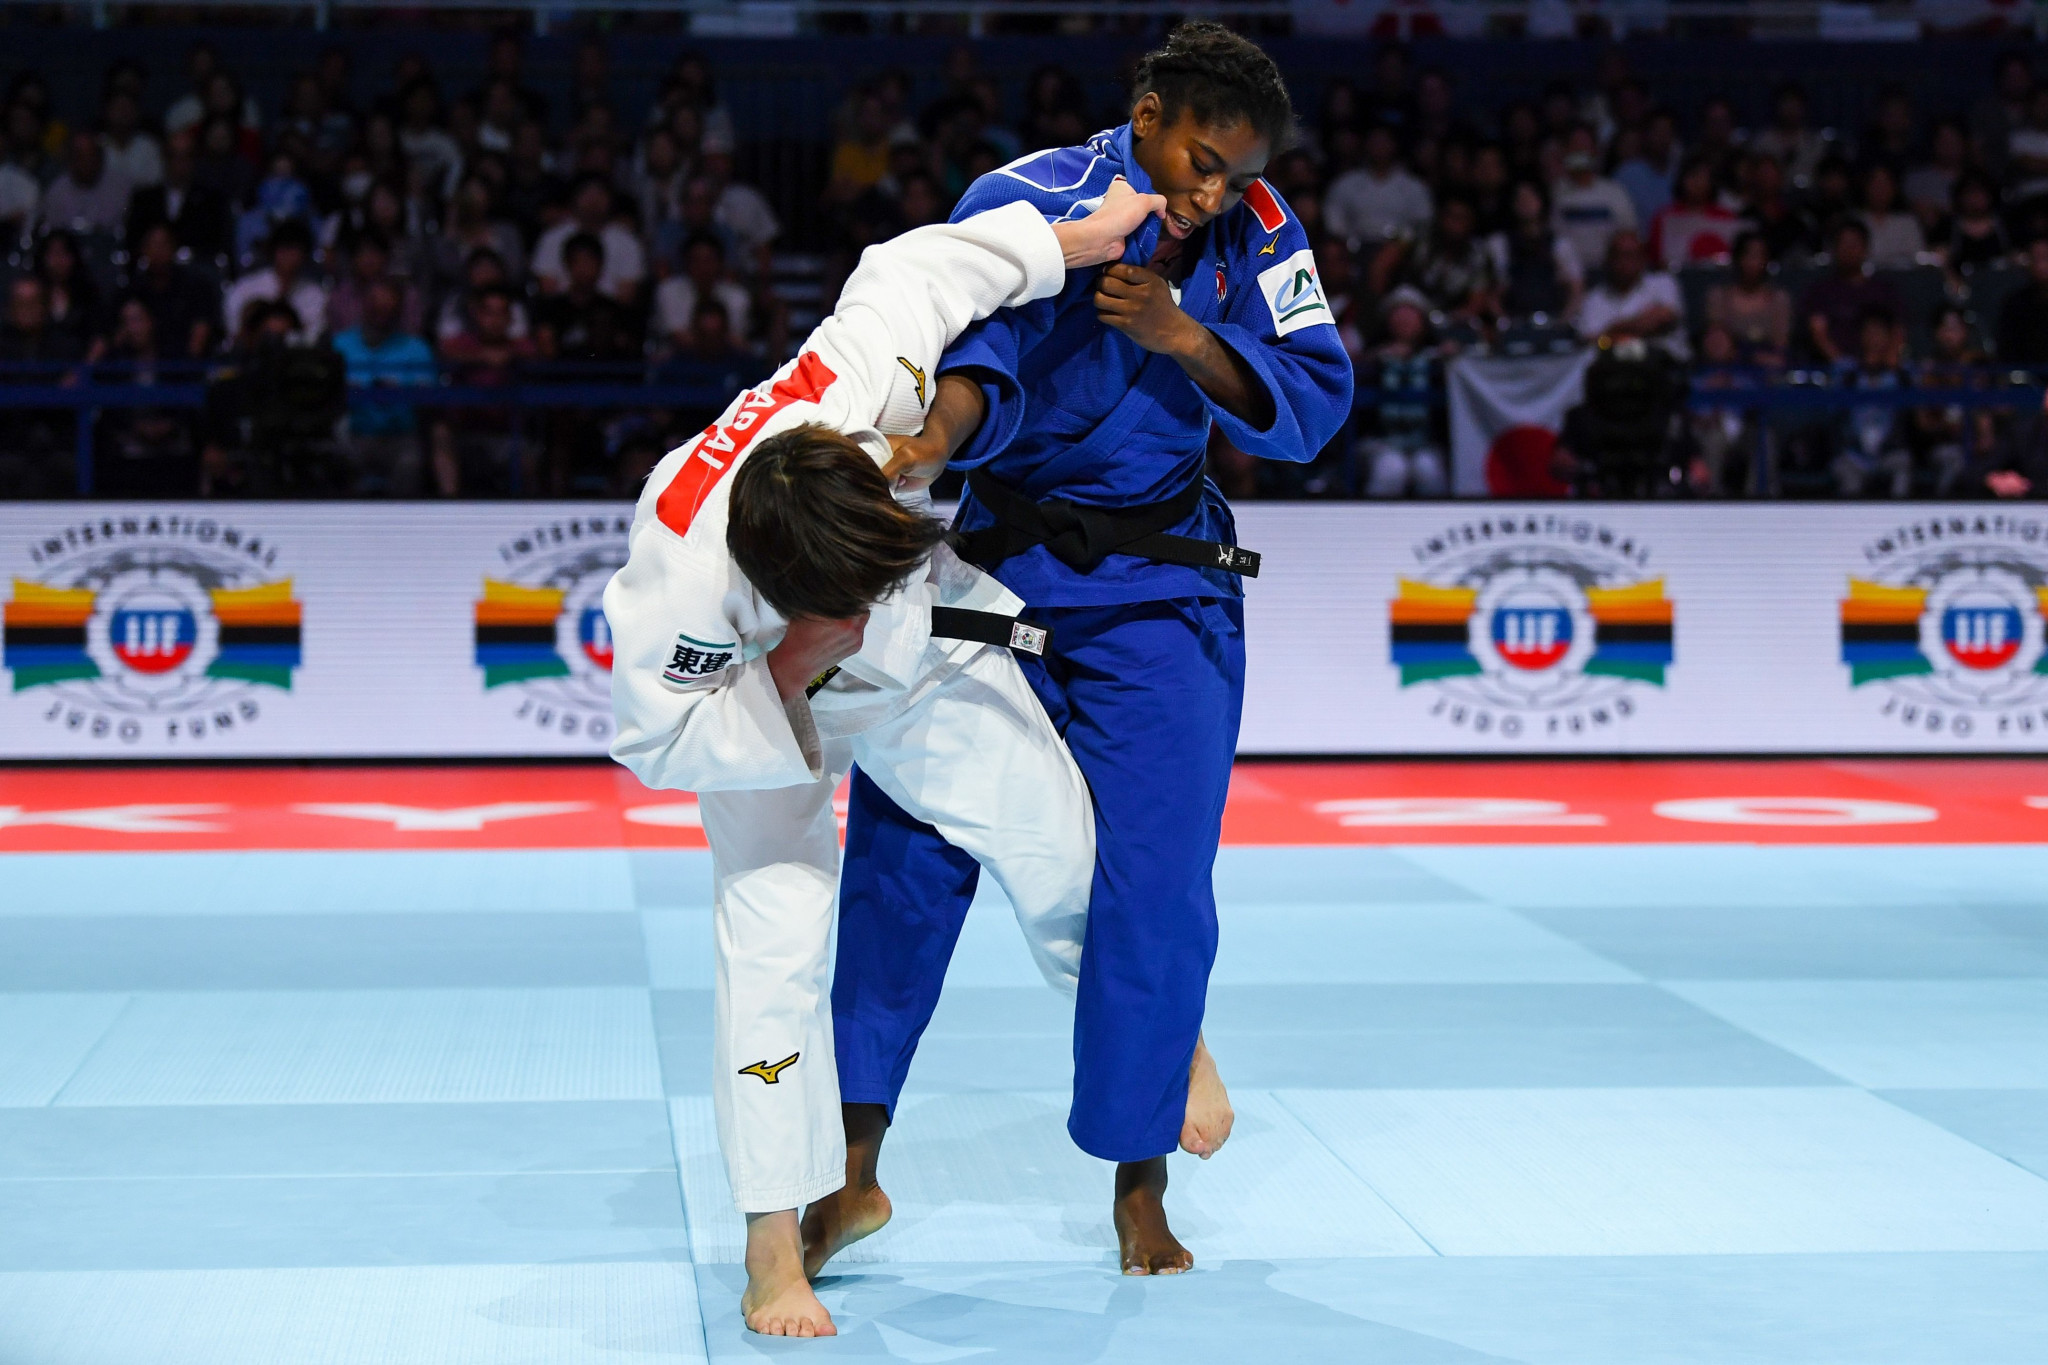 Chizuru Arai fights Marie-Ève Gahié in the under-70kg category ©Getty Images